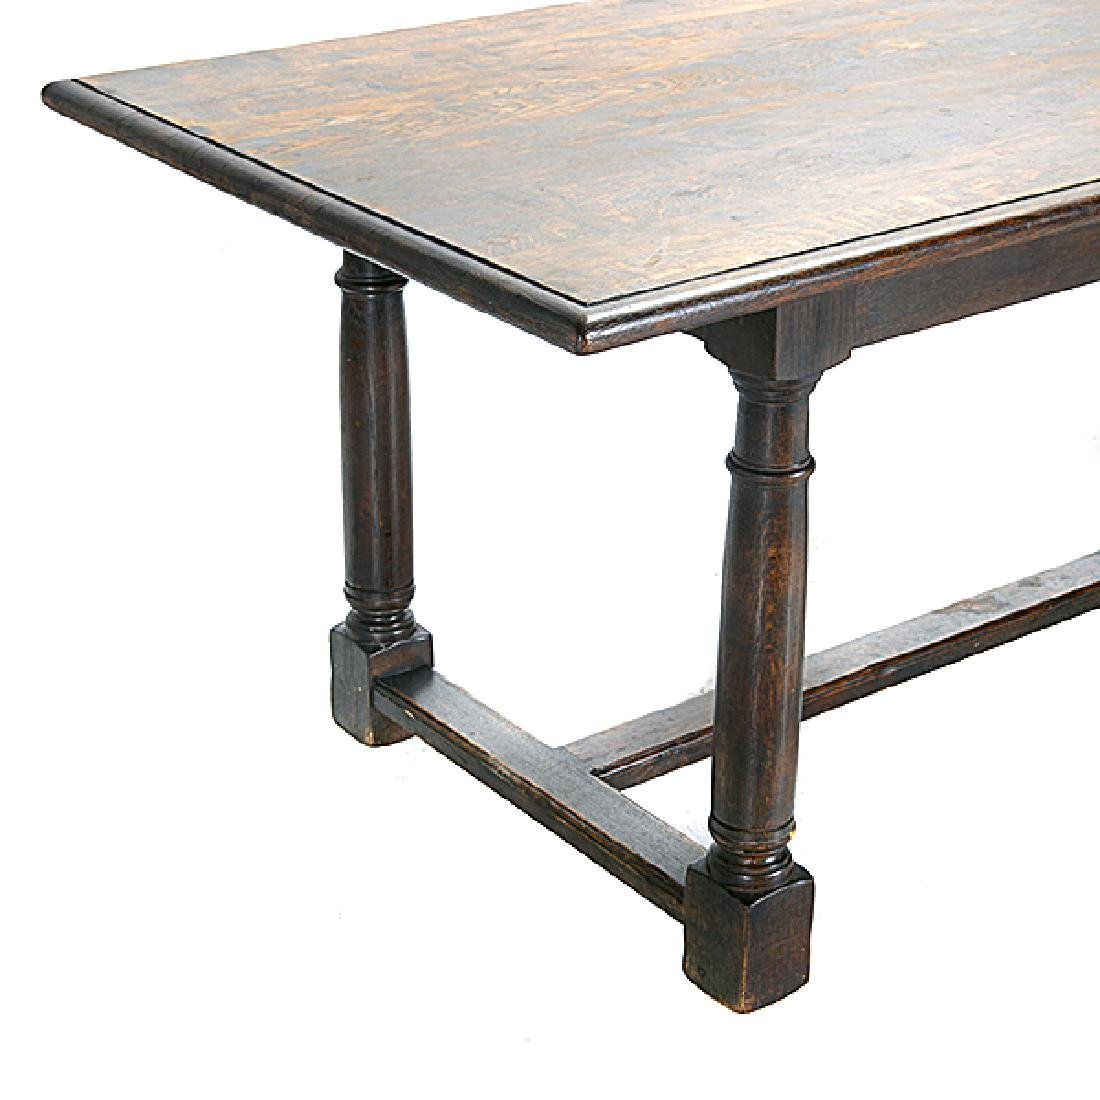 Italian Renaissance Revival Oak Trestle Table with - 2